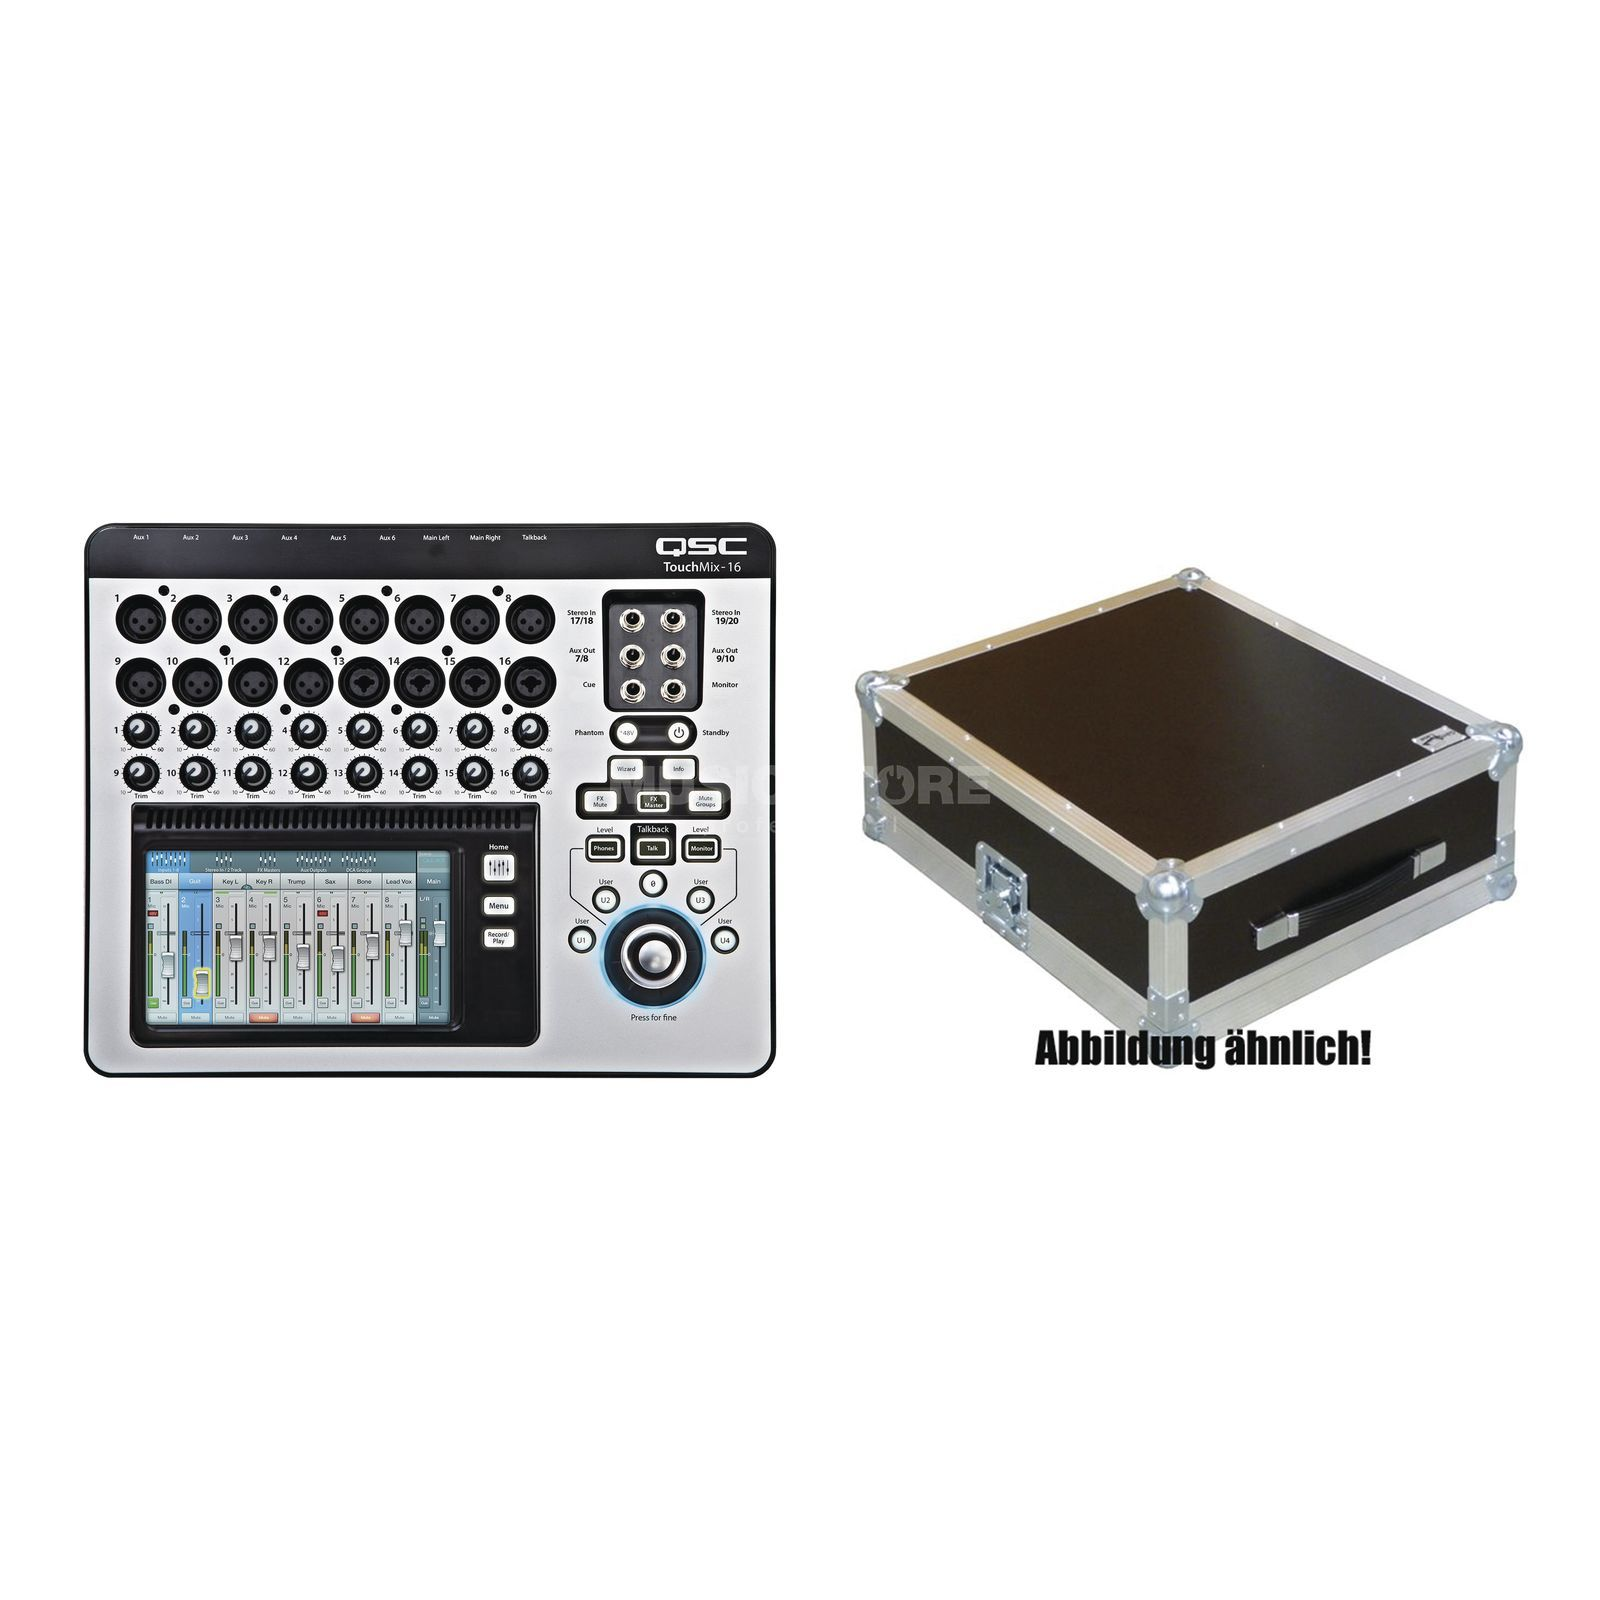 SET QSC TouchMix-16 Digitalmixer inkl. Case Produktbild